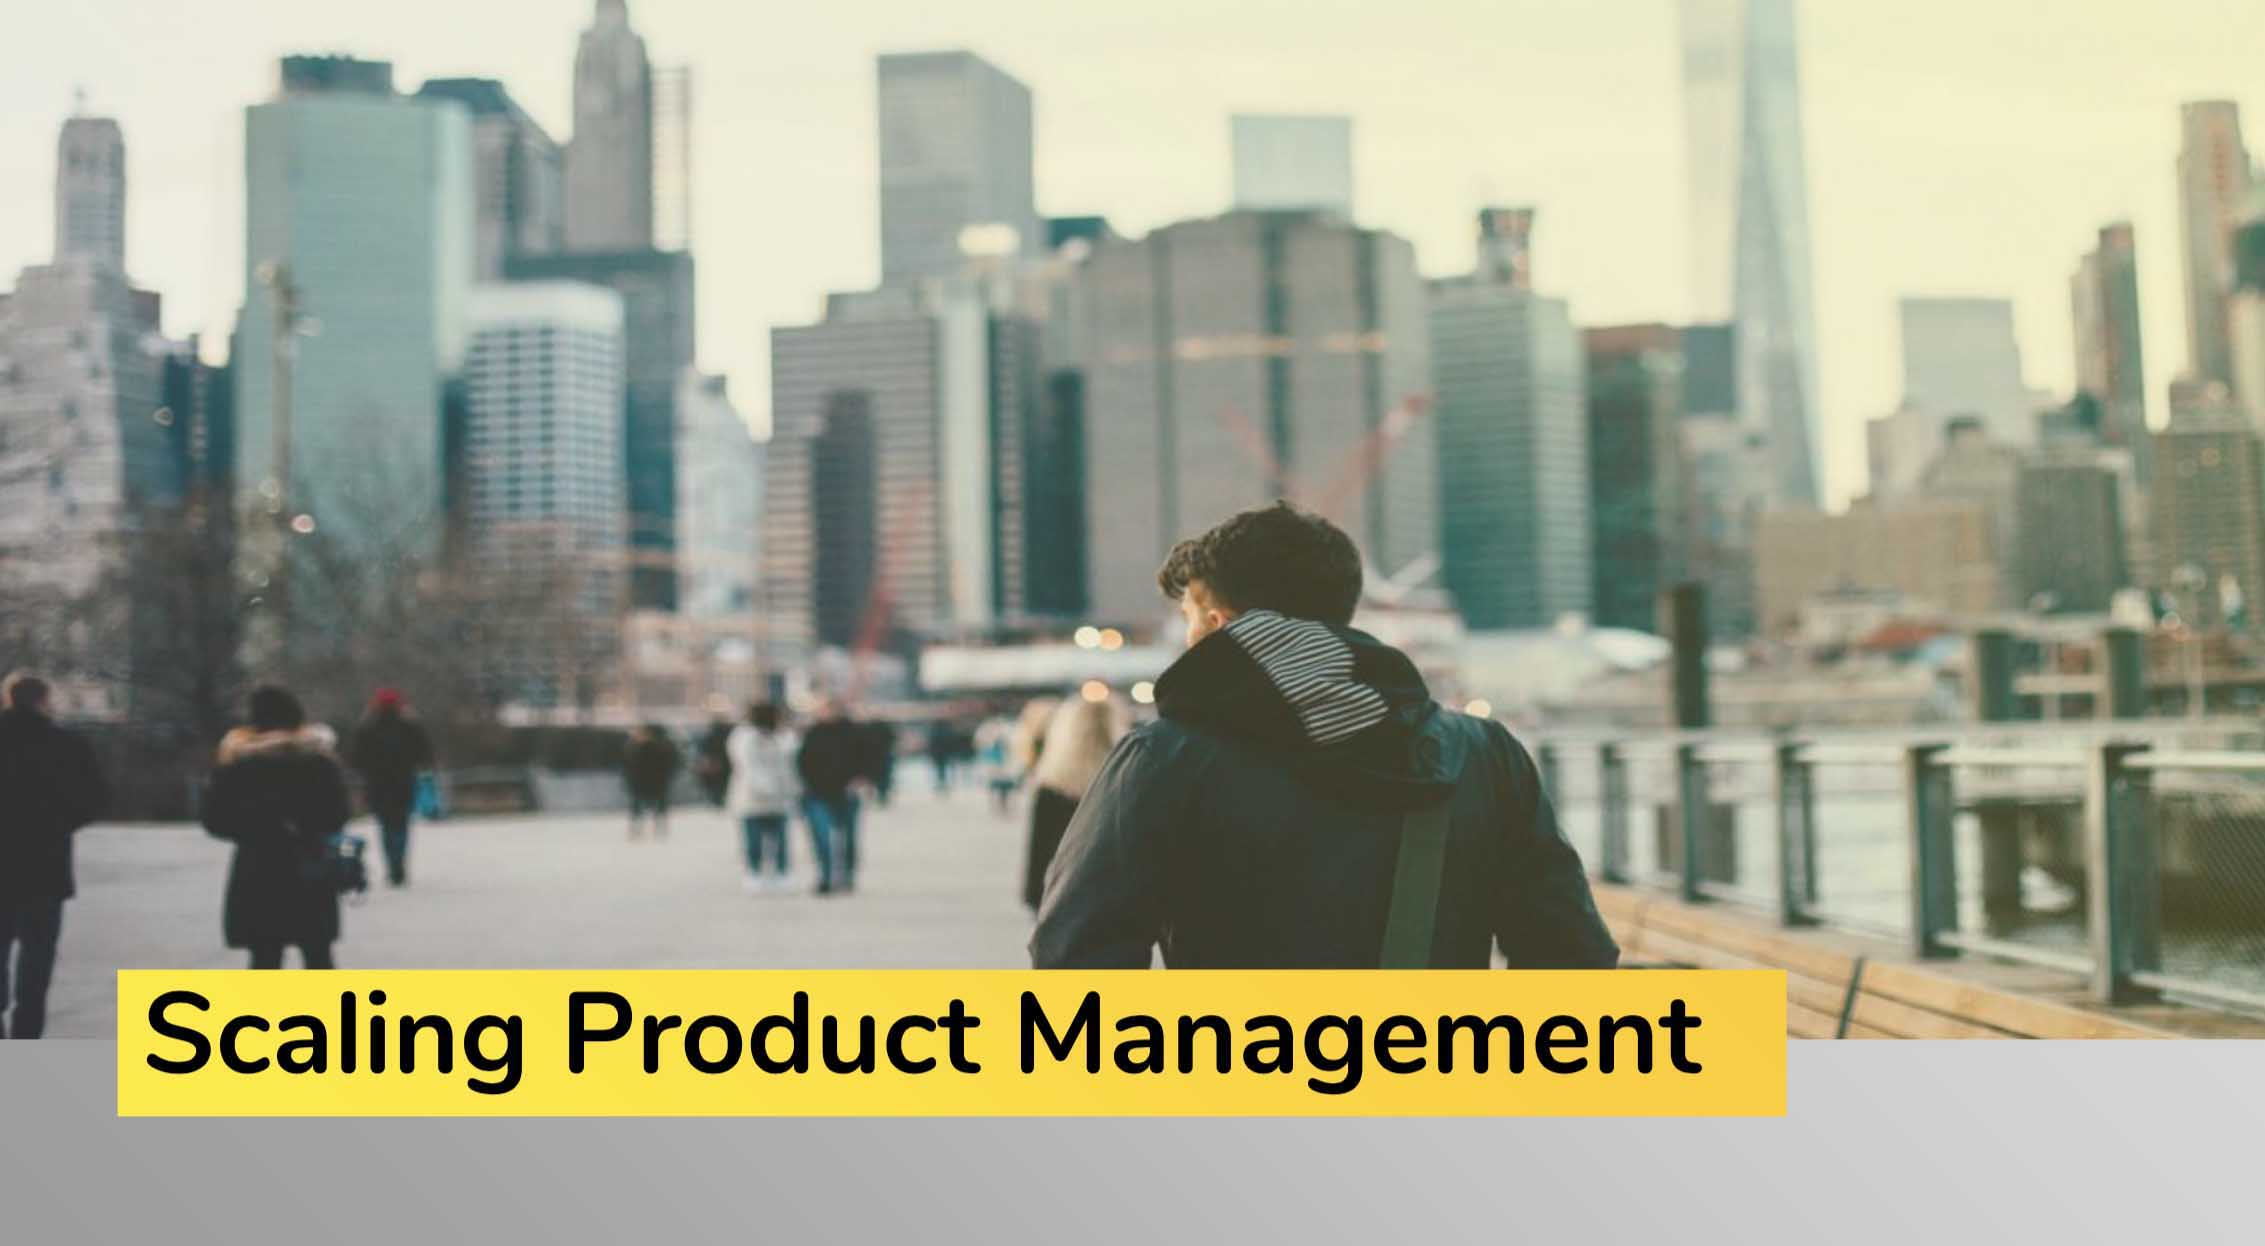 Scaling product management